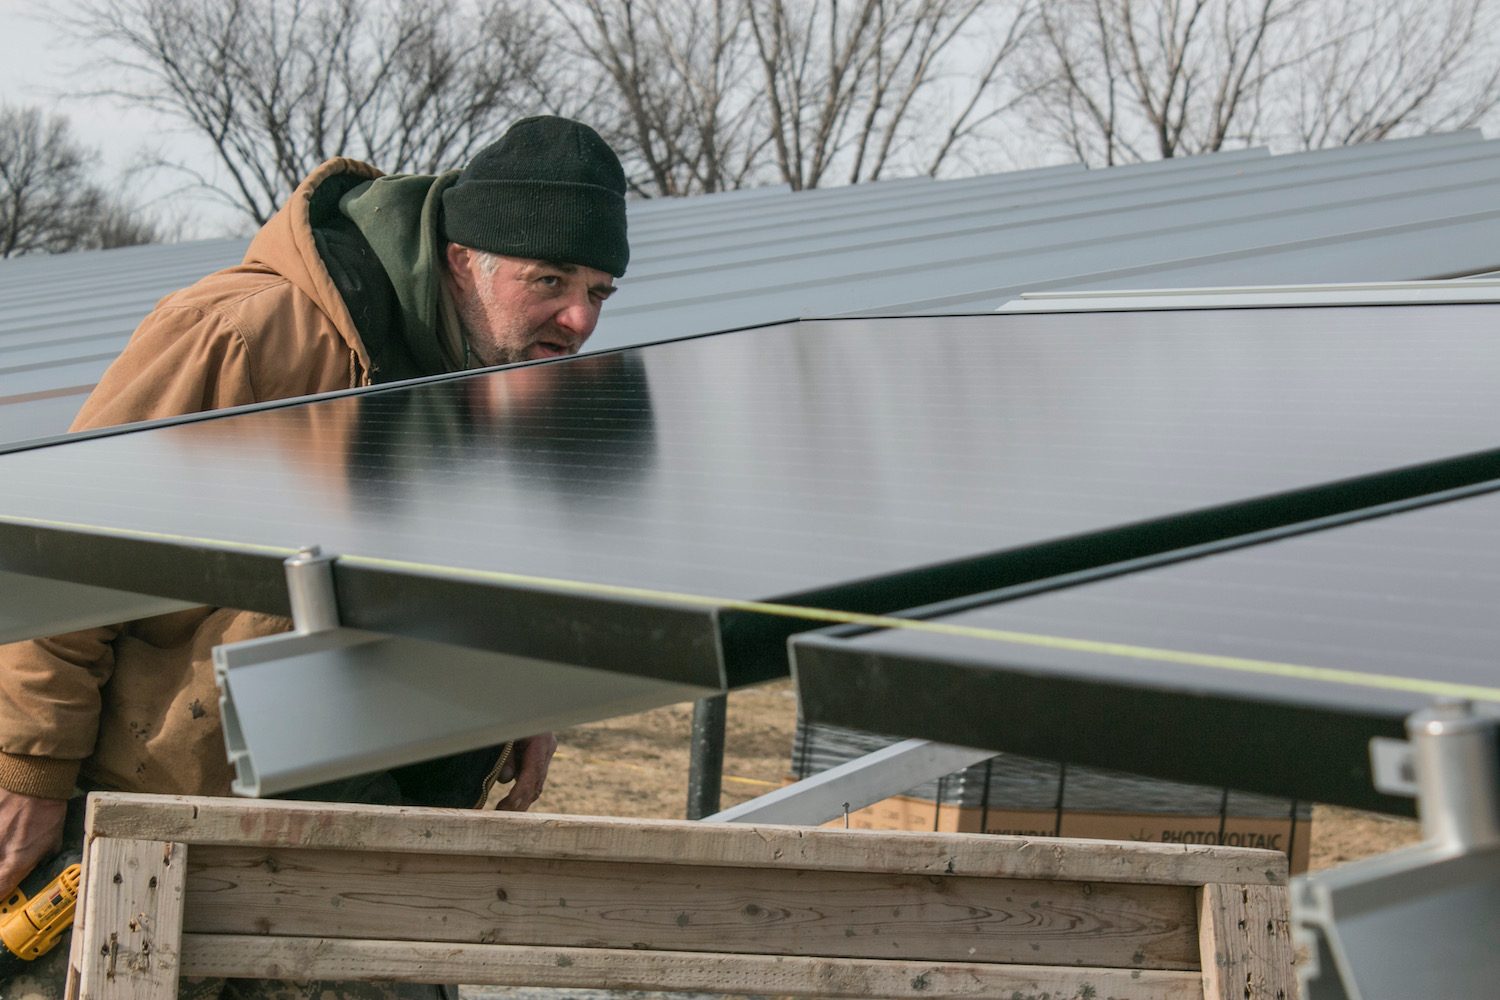 Winnebago Tribe sees power from solar energy as boost to sovereignty